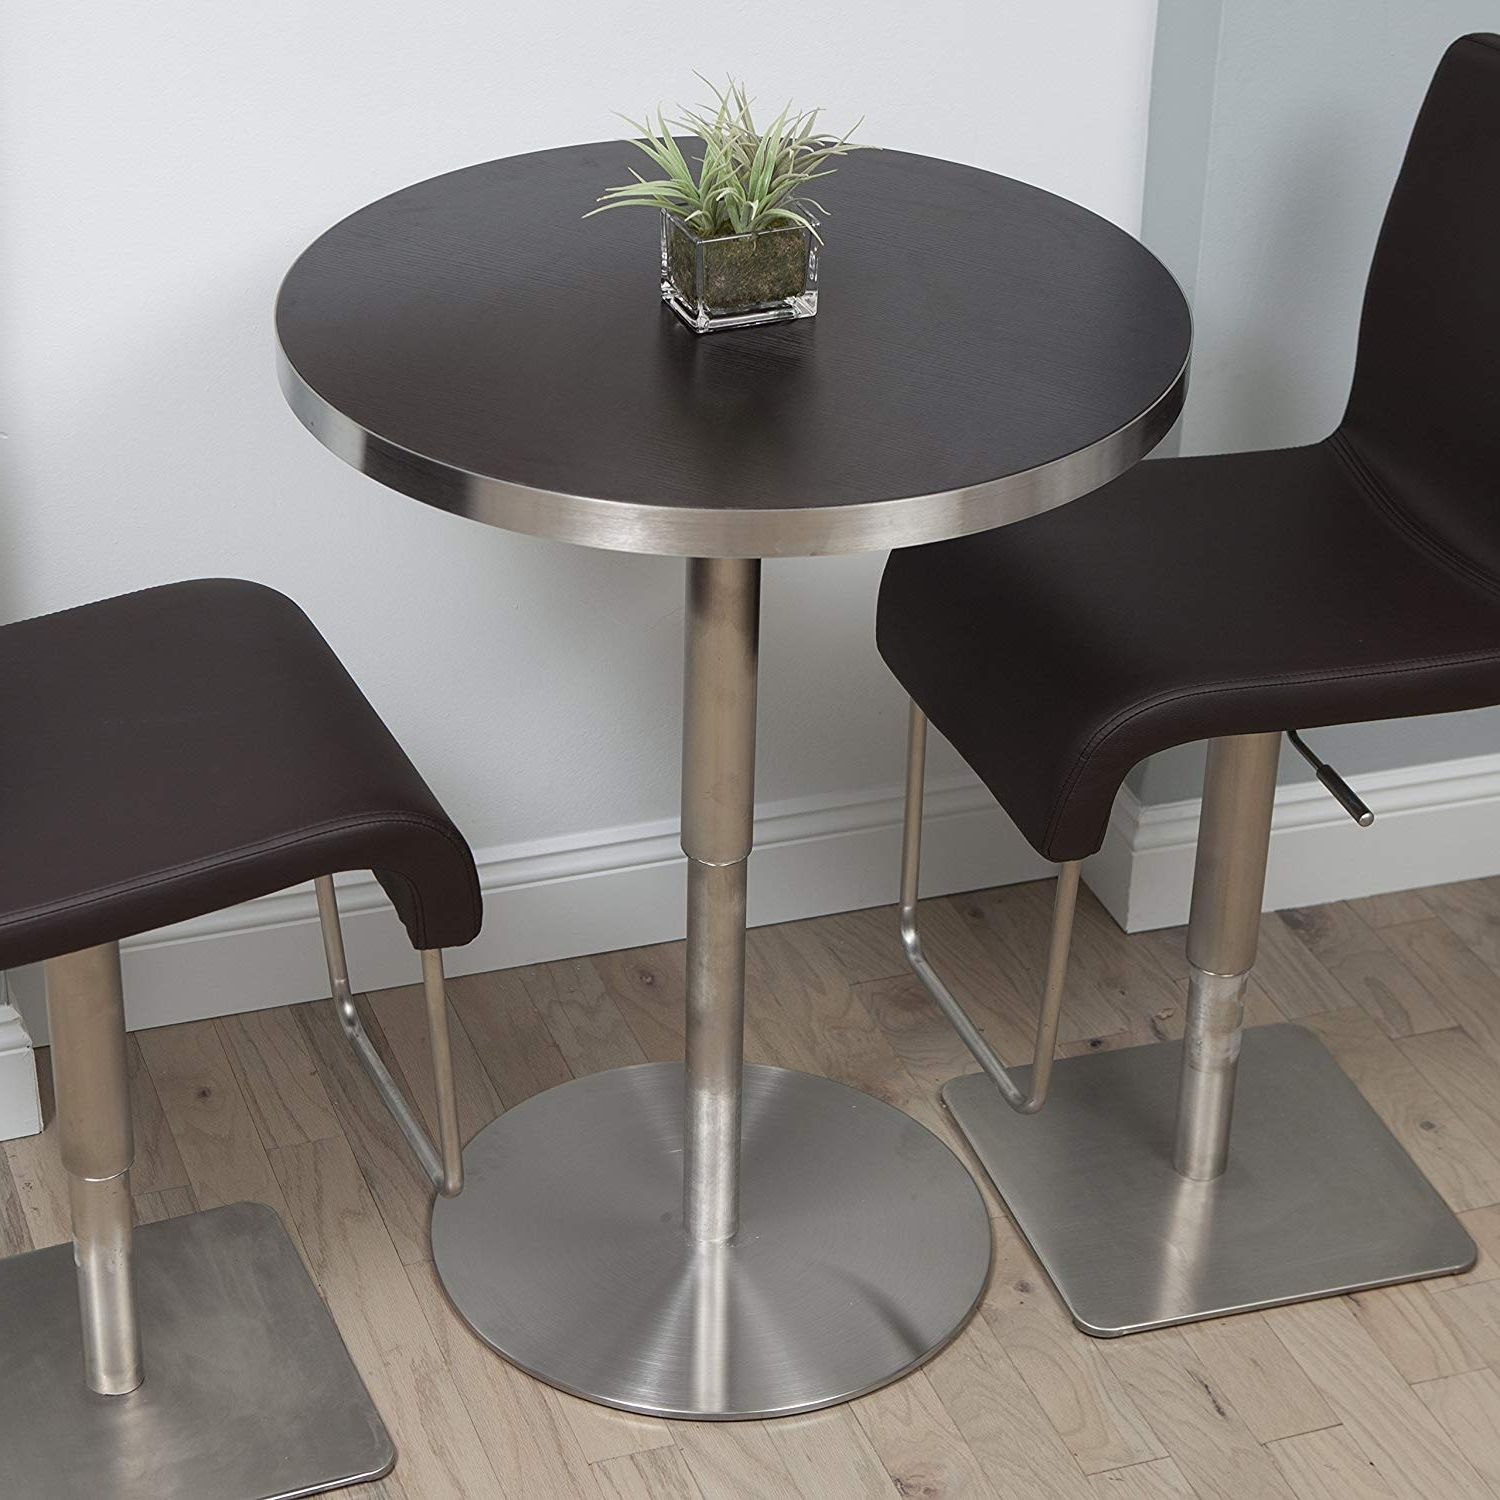 Popular Brushed Metal Dining Tables Inside Amazon – In The Mix Mix Brushed Stainless Steel Round Wood (View 7 of 25)